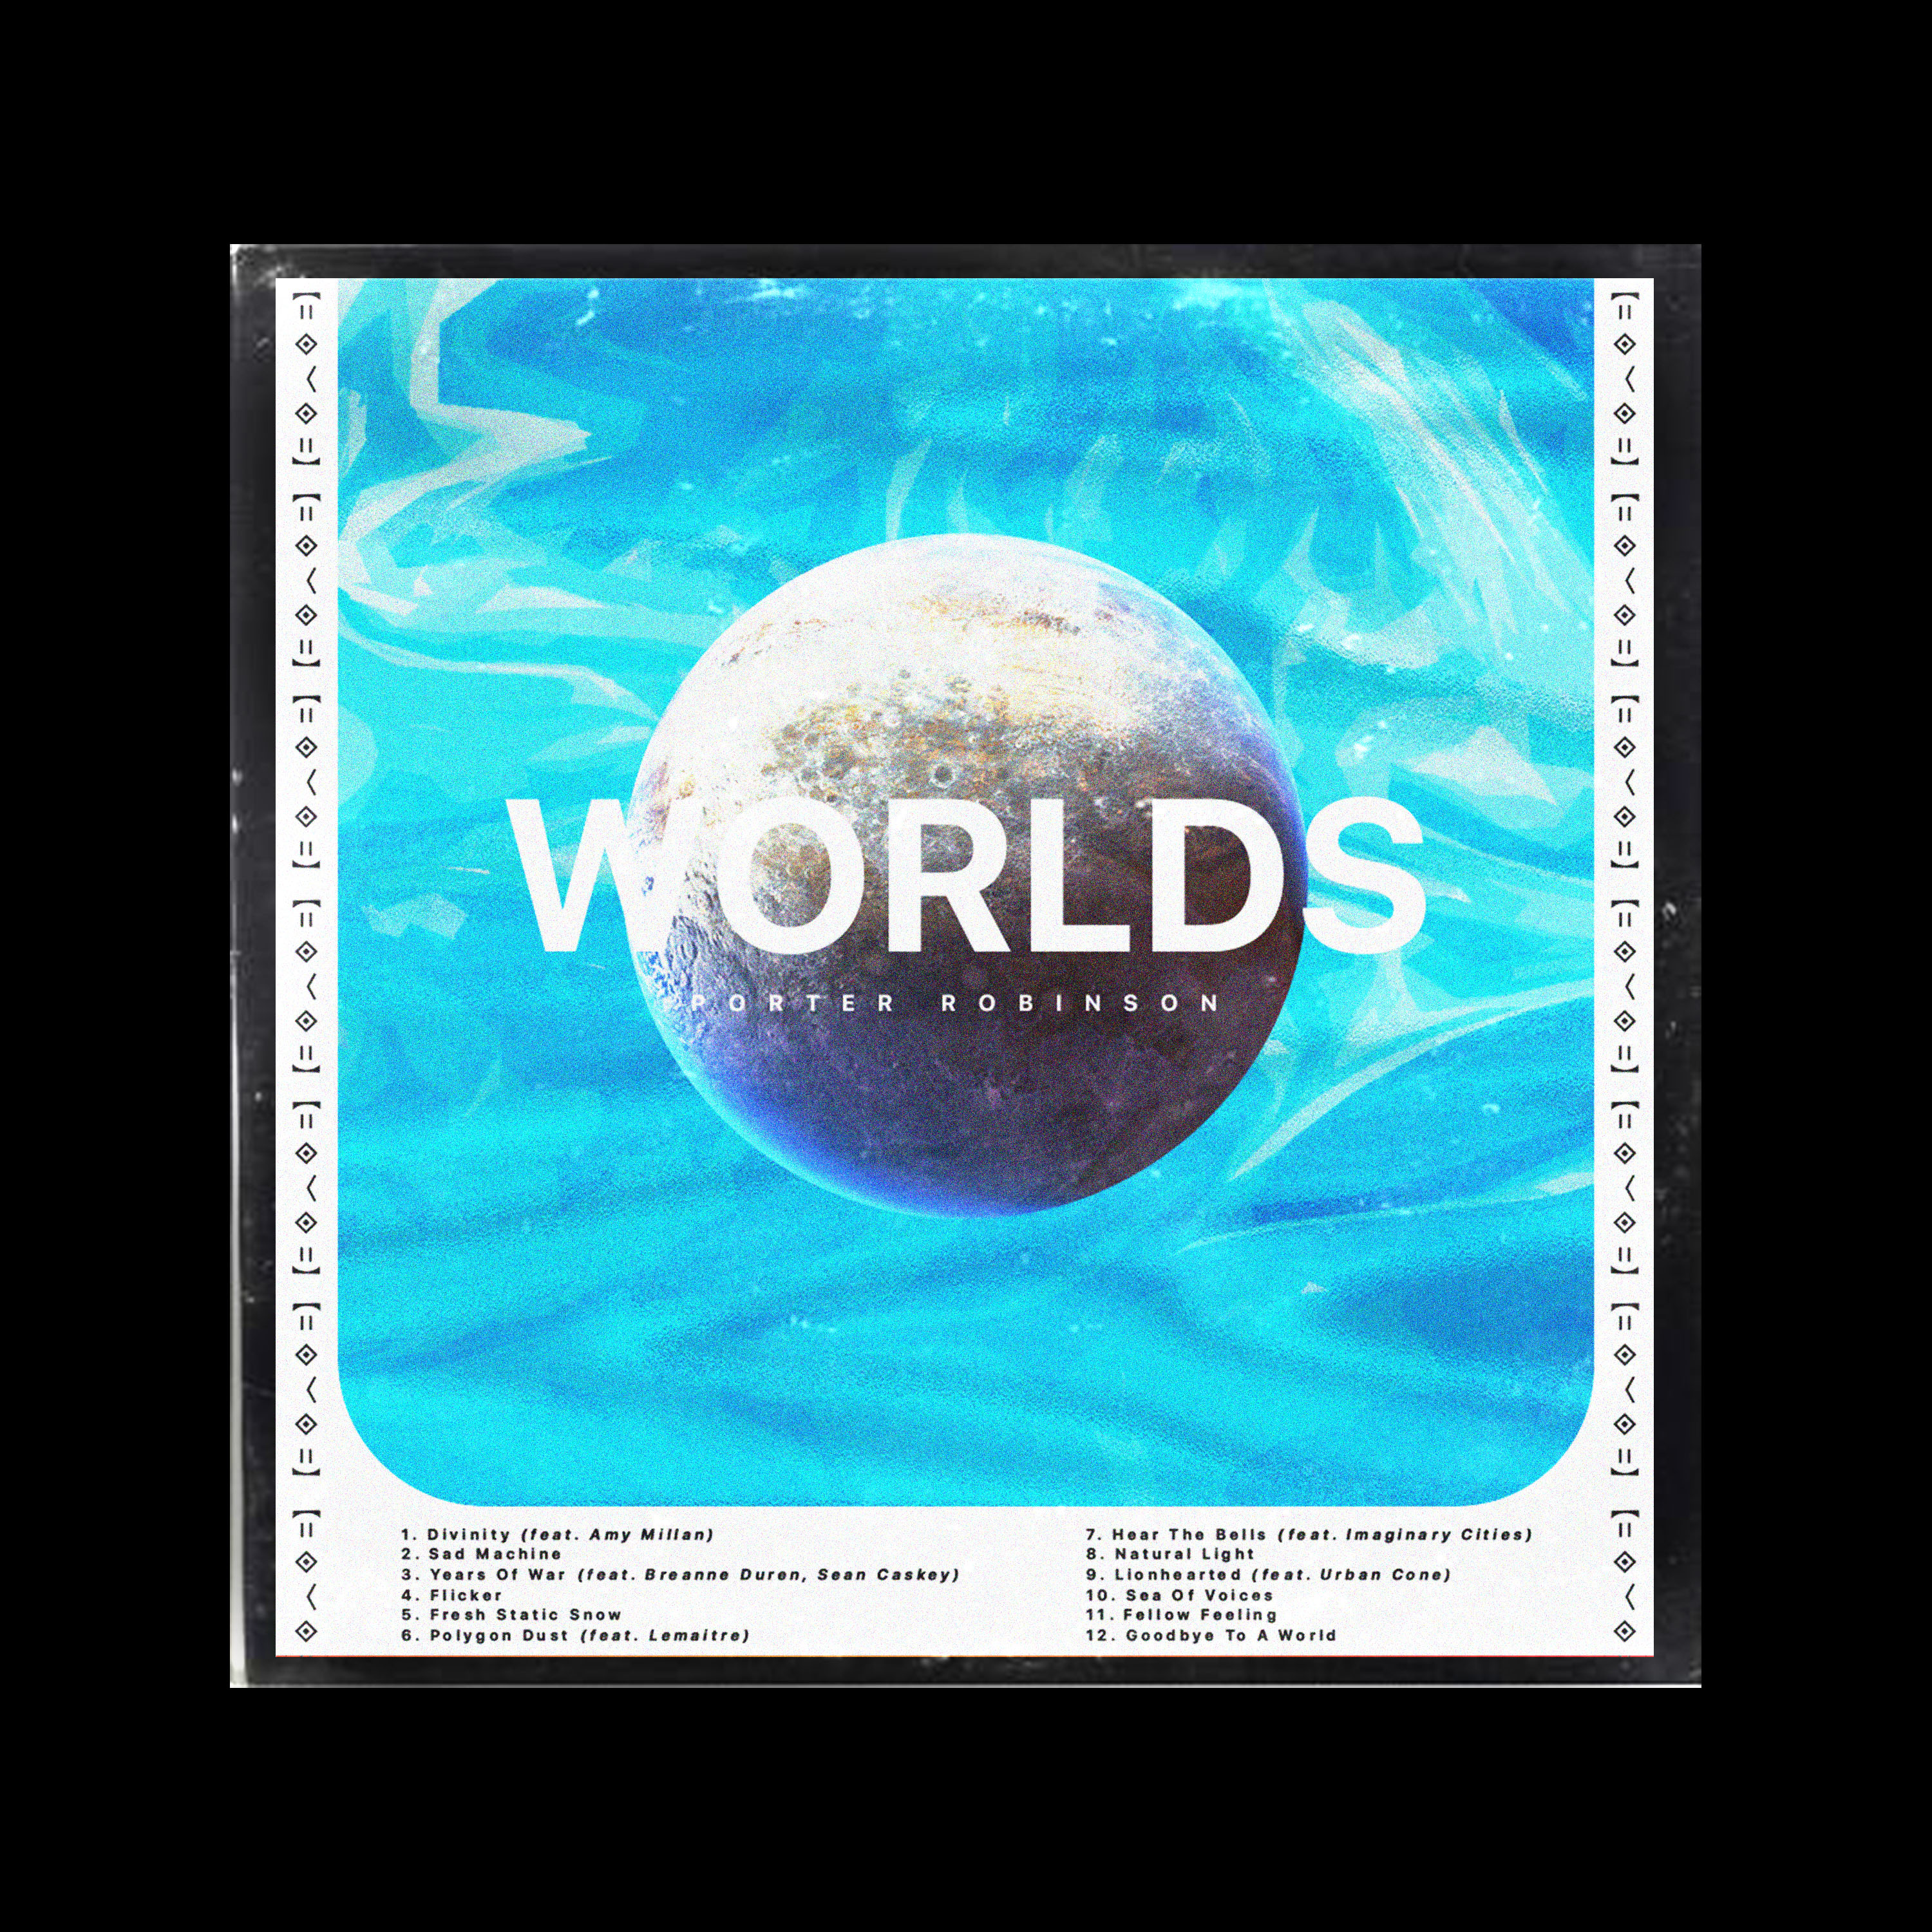 Album cover for worlds